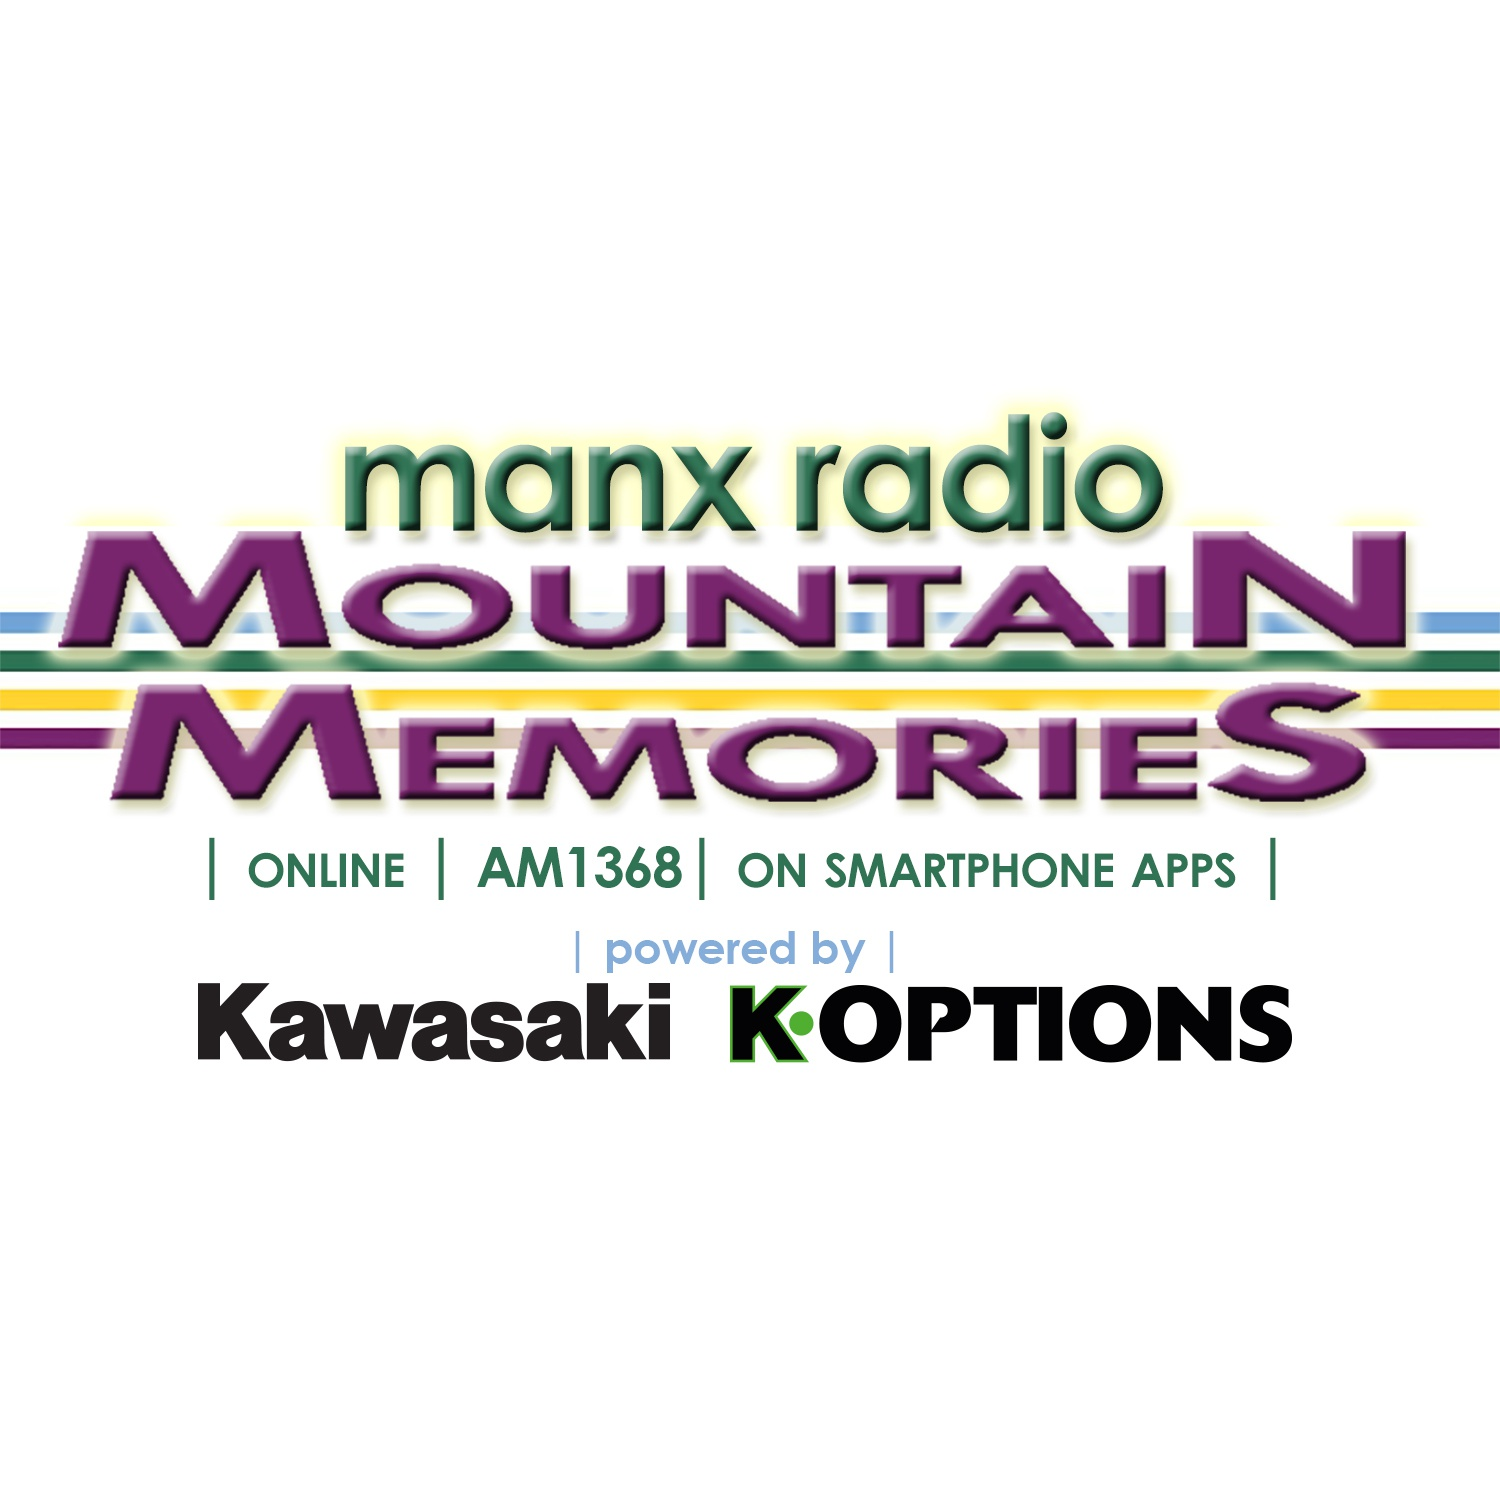 Manx Radio's Mountain Memories